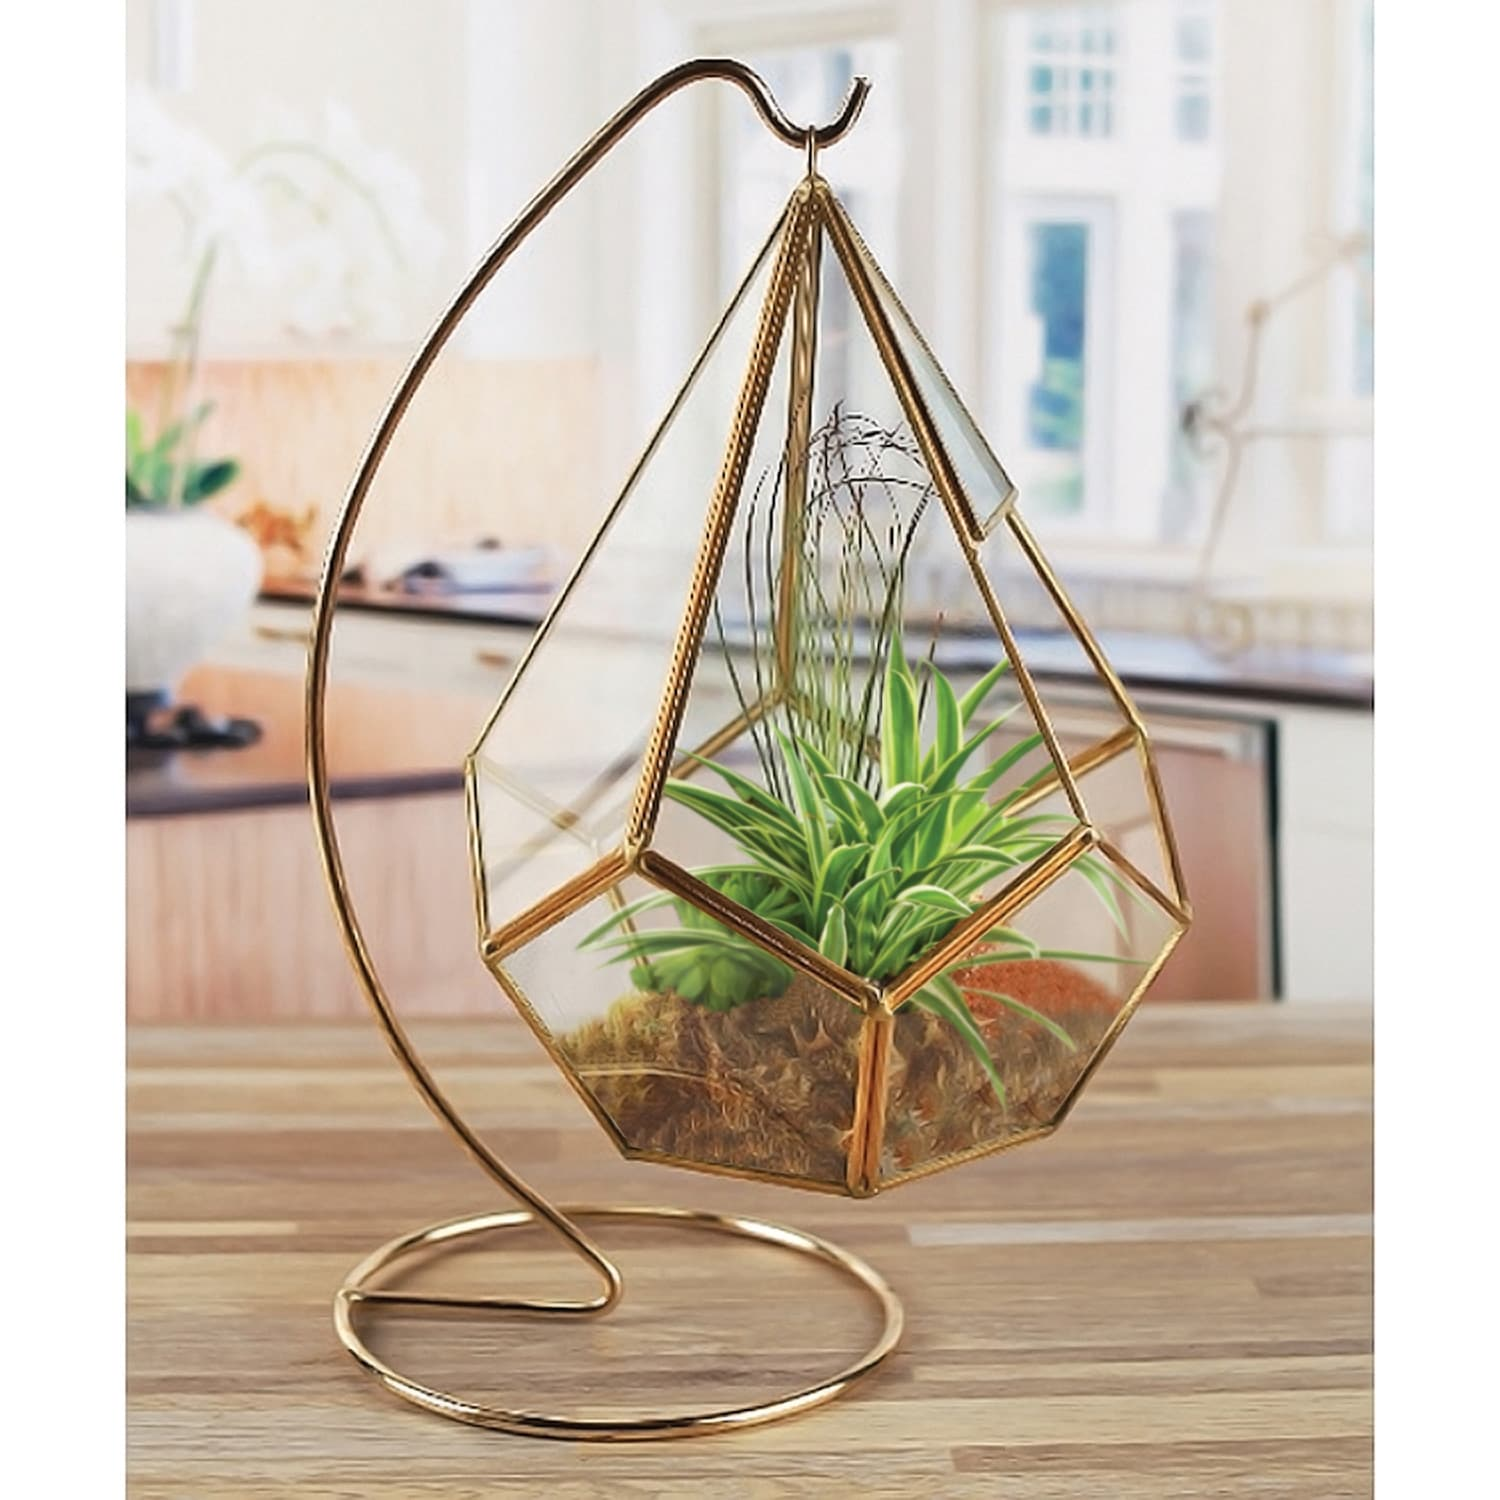 Shop Circleware Hanging Glass Terrarium With Stand Gold Geometric